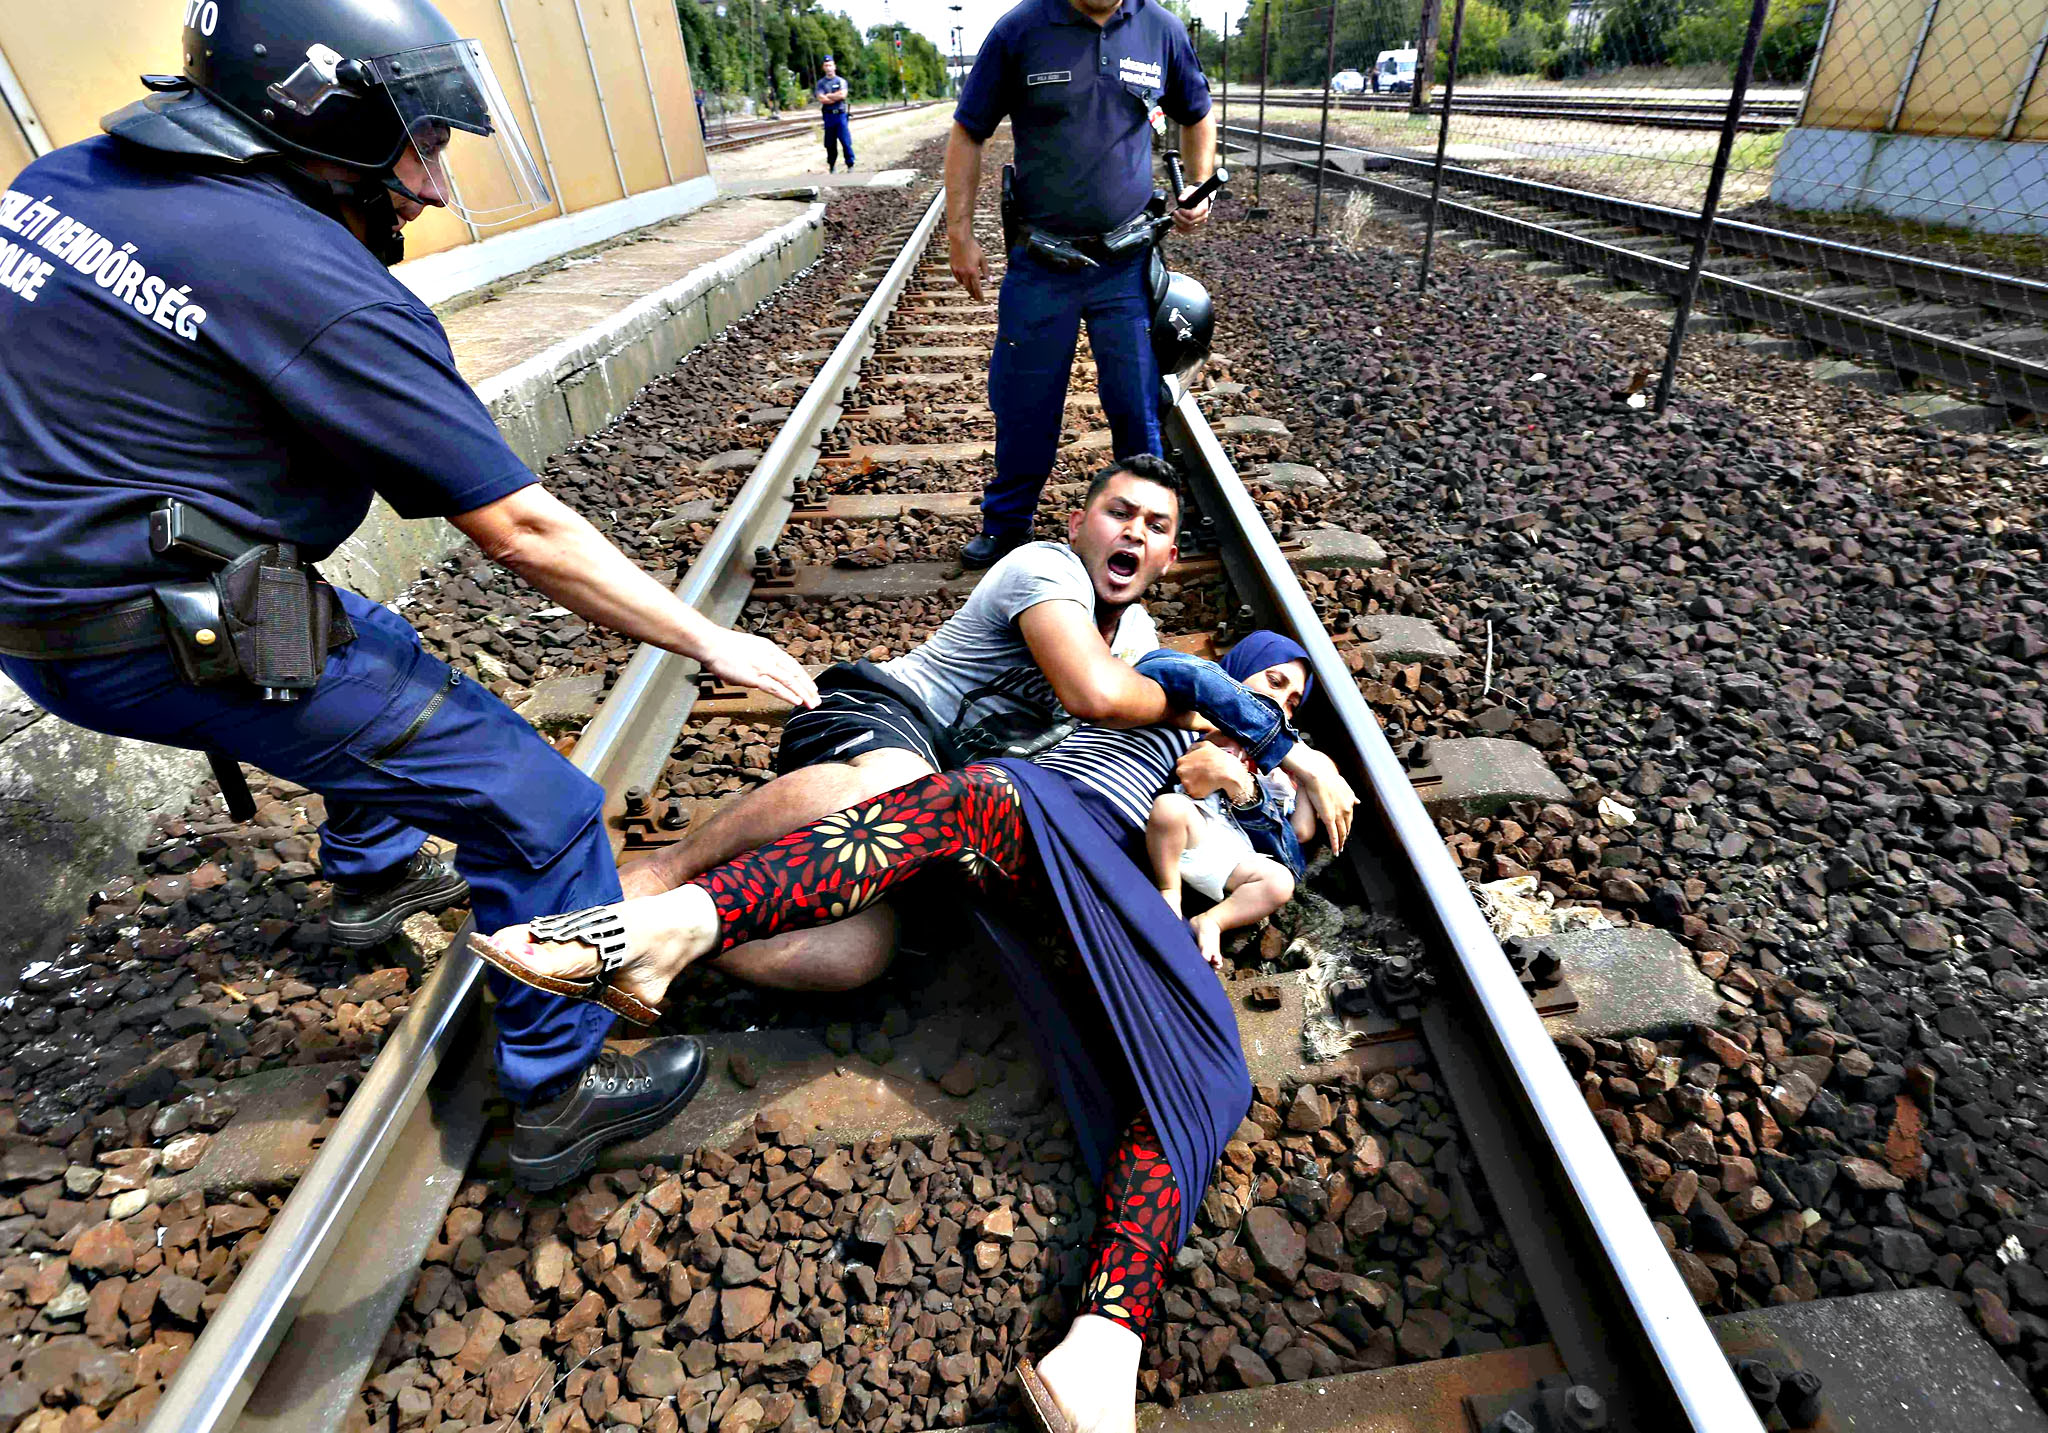 Hungarian policemen stand by the family of migrants protesting on the tracks at the railway station in the town of Bicske, Hungary on Thursday